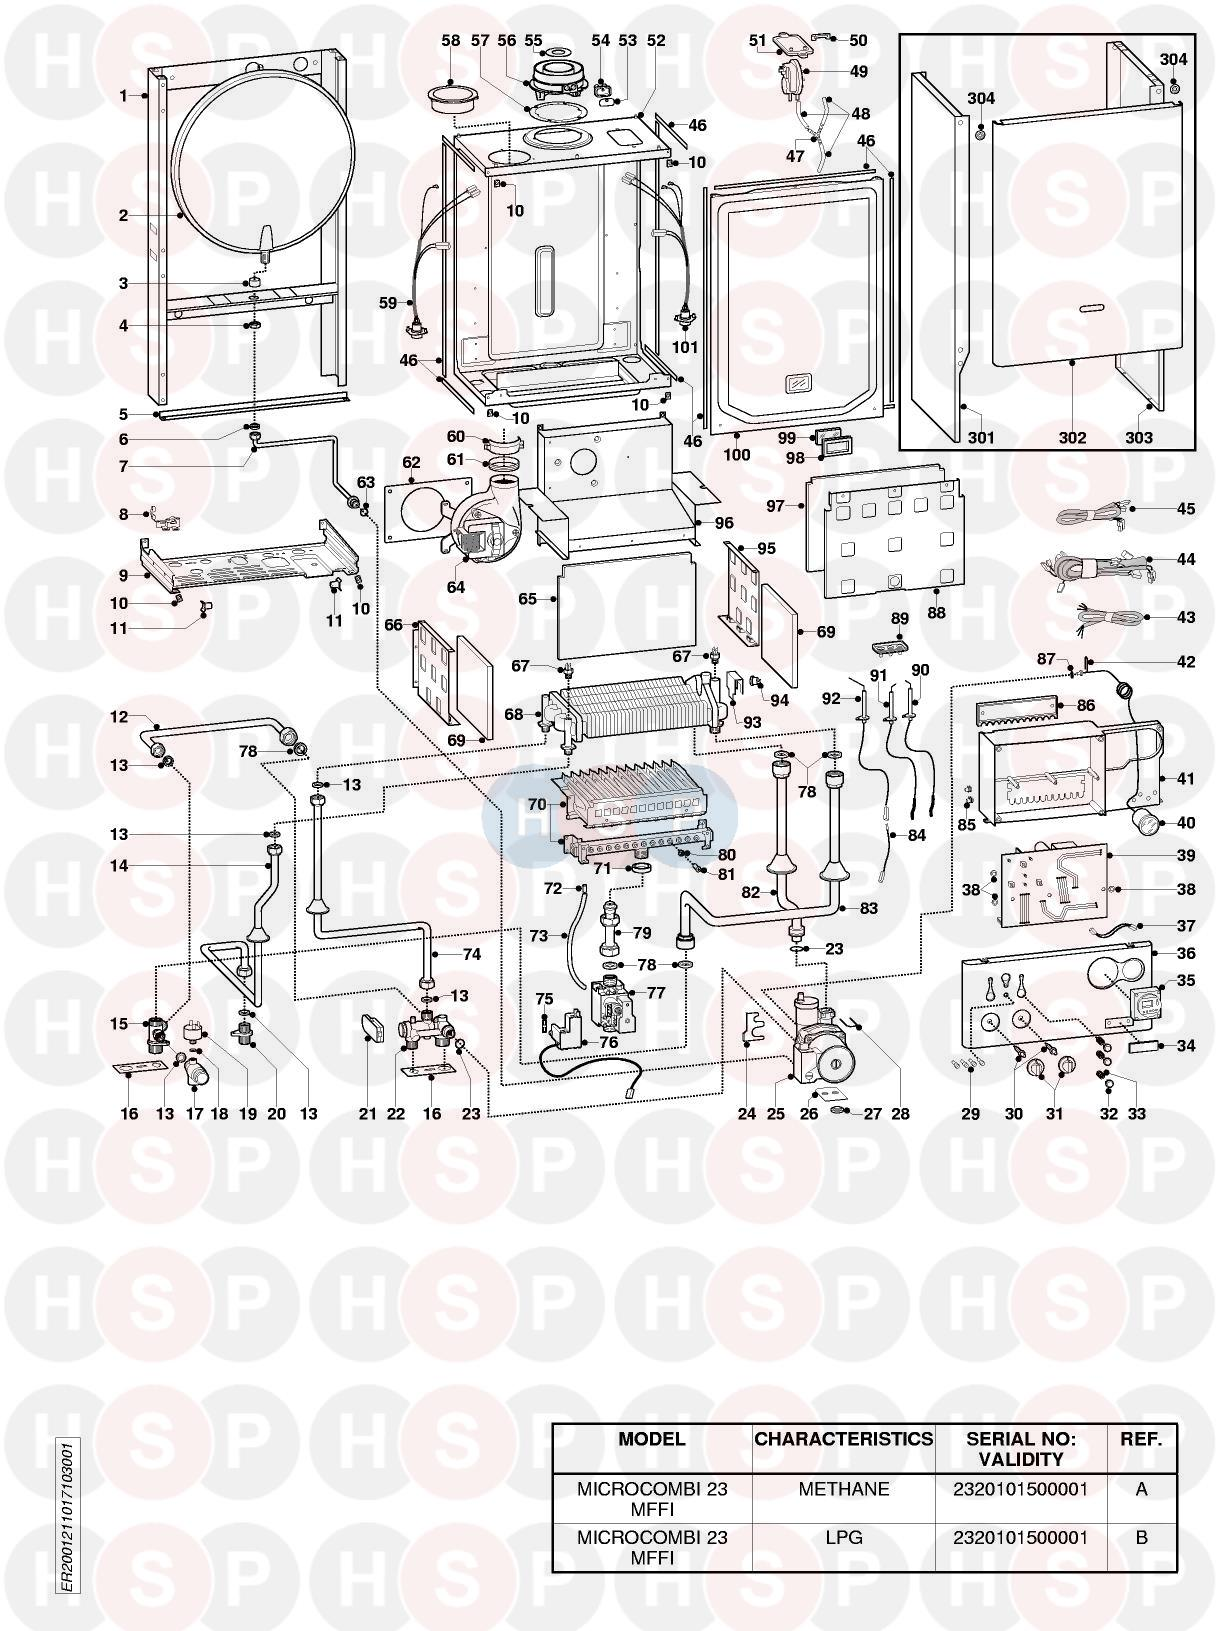 Ariston MICROCOMBI 23 MFFI EDITION3 (EXPLODED VIEW